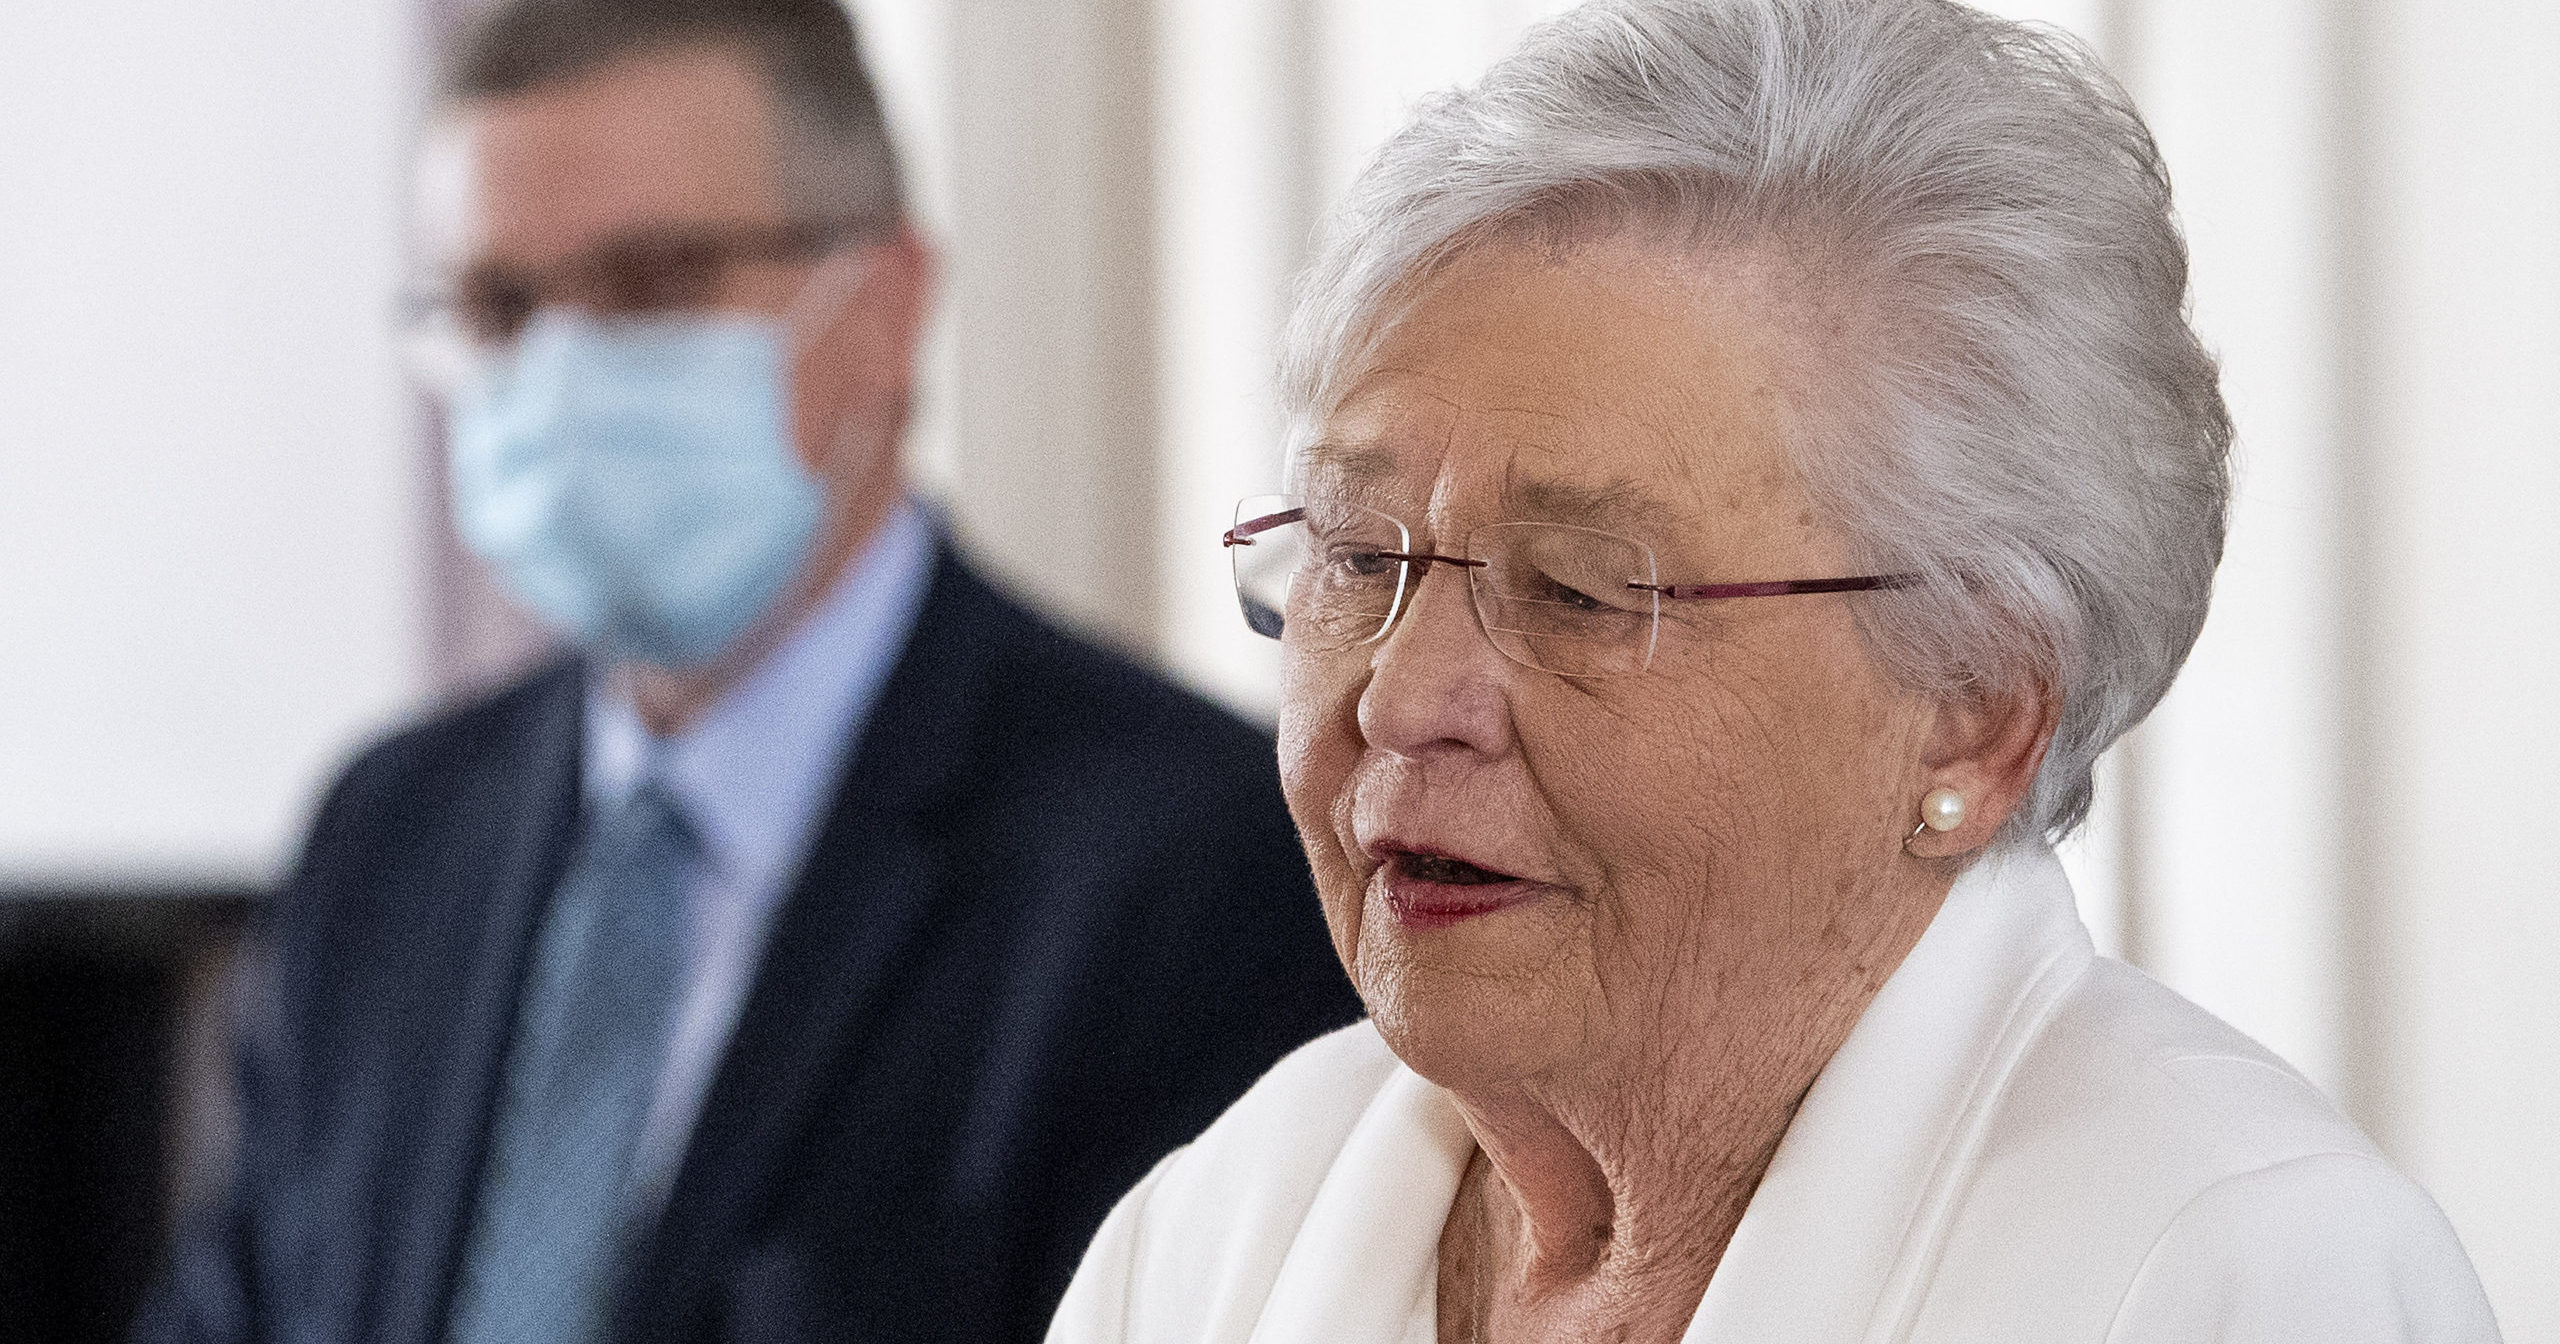 Alabama Gov. Kay Ivey speaks during a news conference at the Alabama Capitol in Montgomery, Alabama, on March 4, 2021.